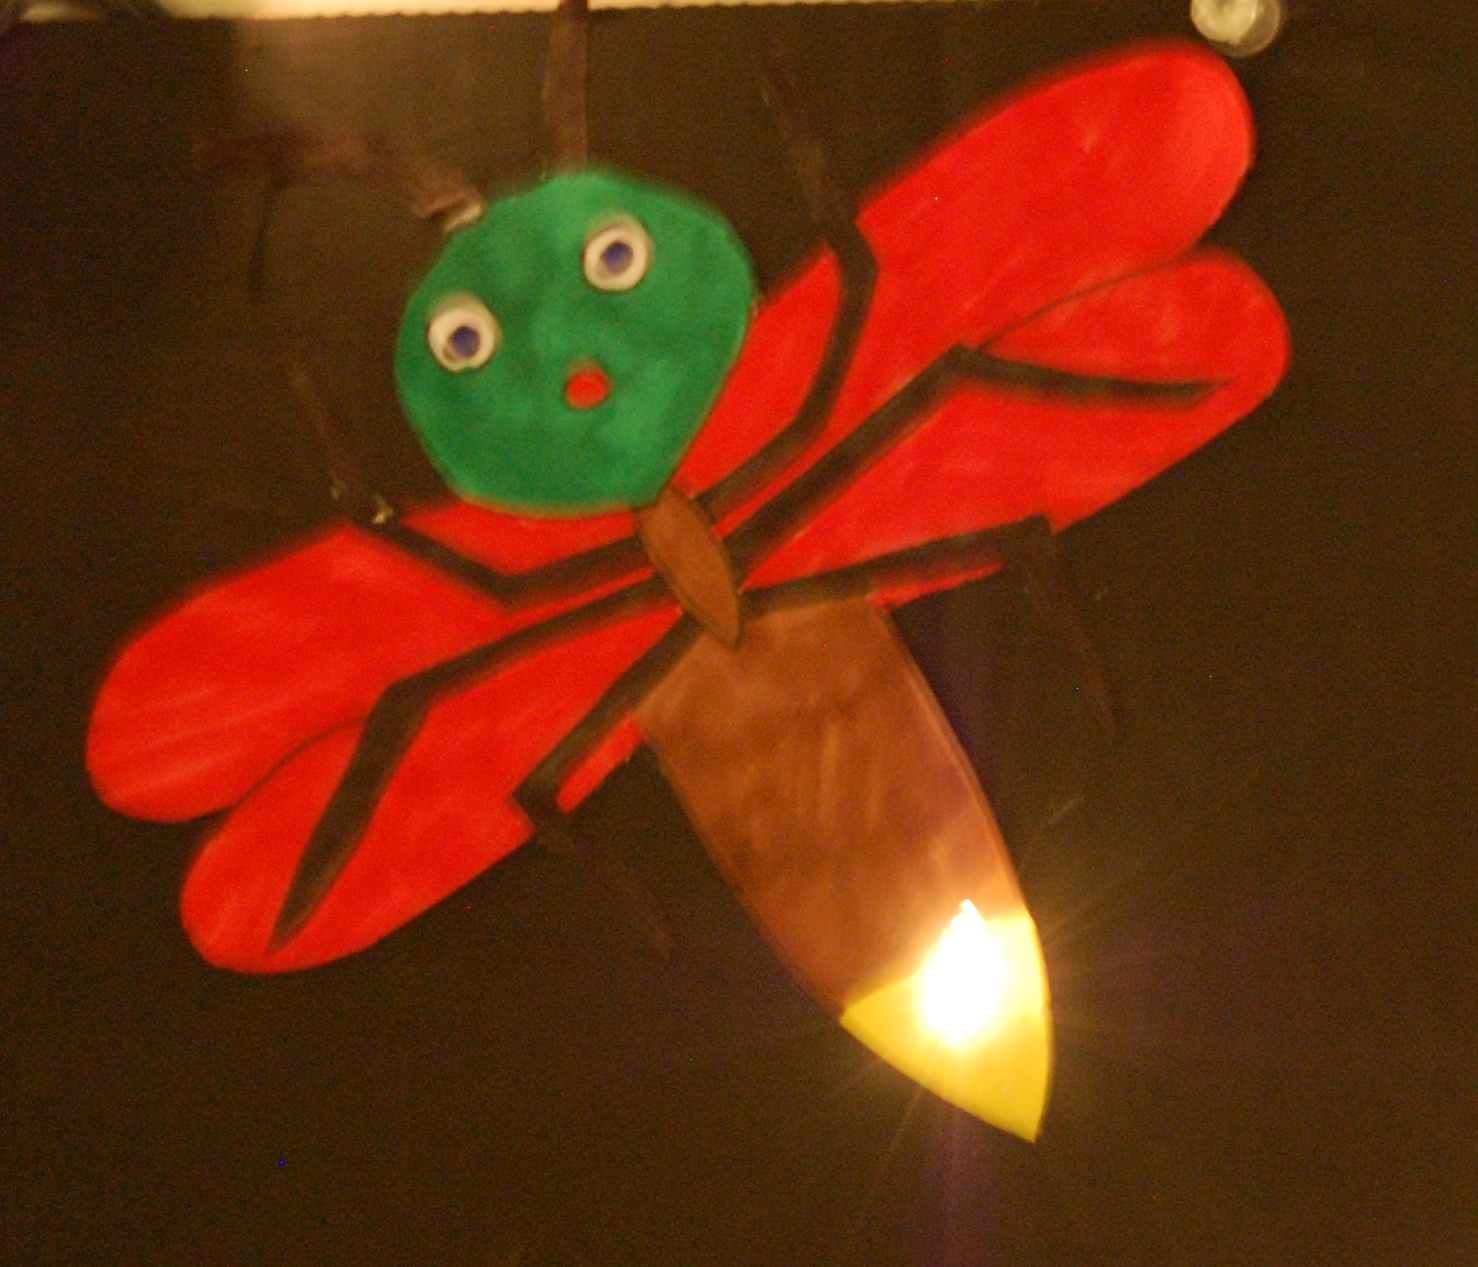 10 Best Images of Printable Firefly Craft - Firefly Craft ...